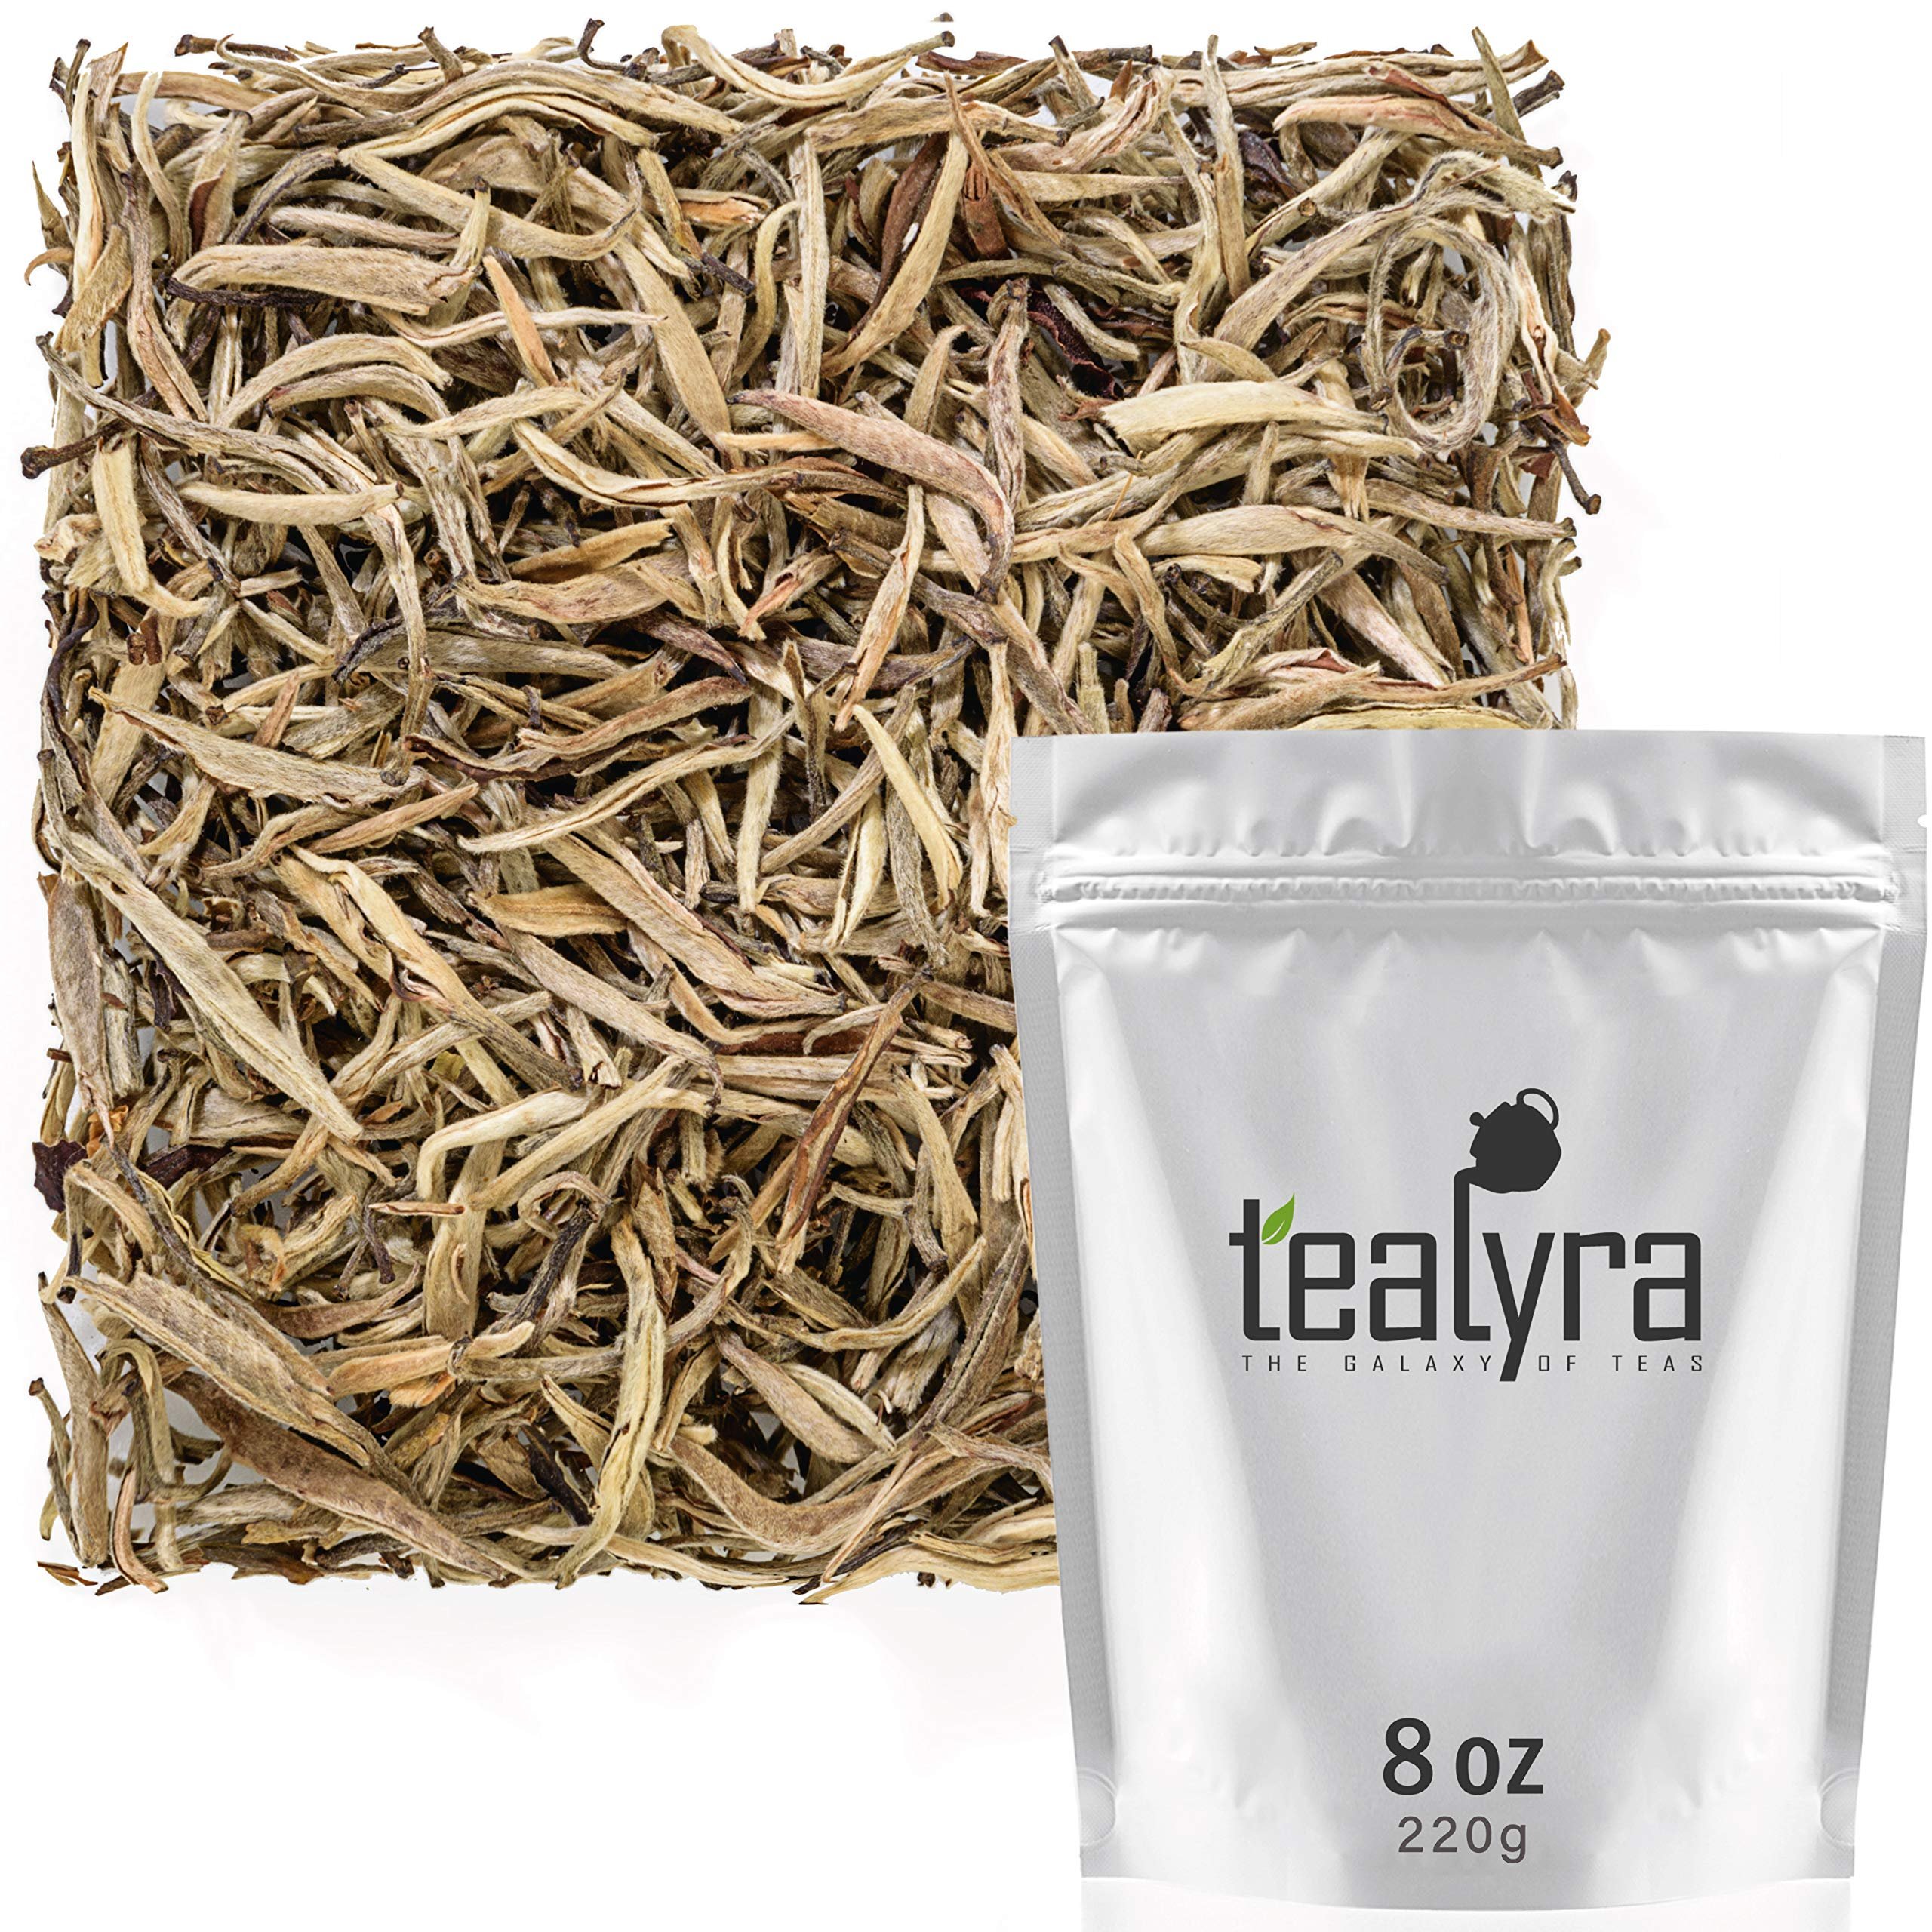 Tealyra - Luxury Jasmine Silver Needle White Losse Tea - Organically Grown in Fujian China - Loose Leaf Tea - Caffeine Level Low - 220g (8-ounce) by Tealyra